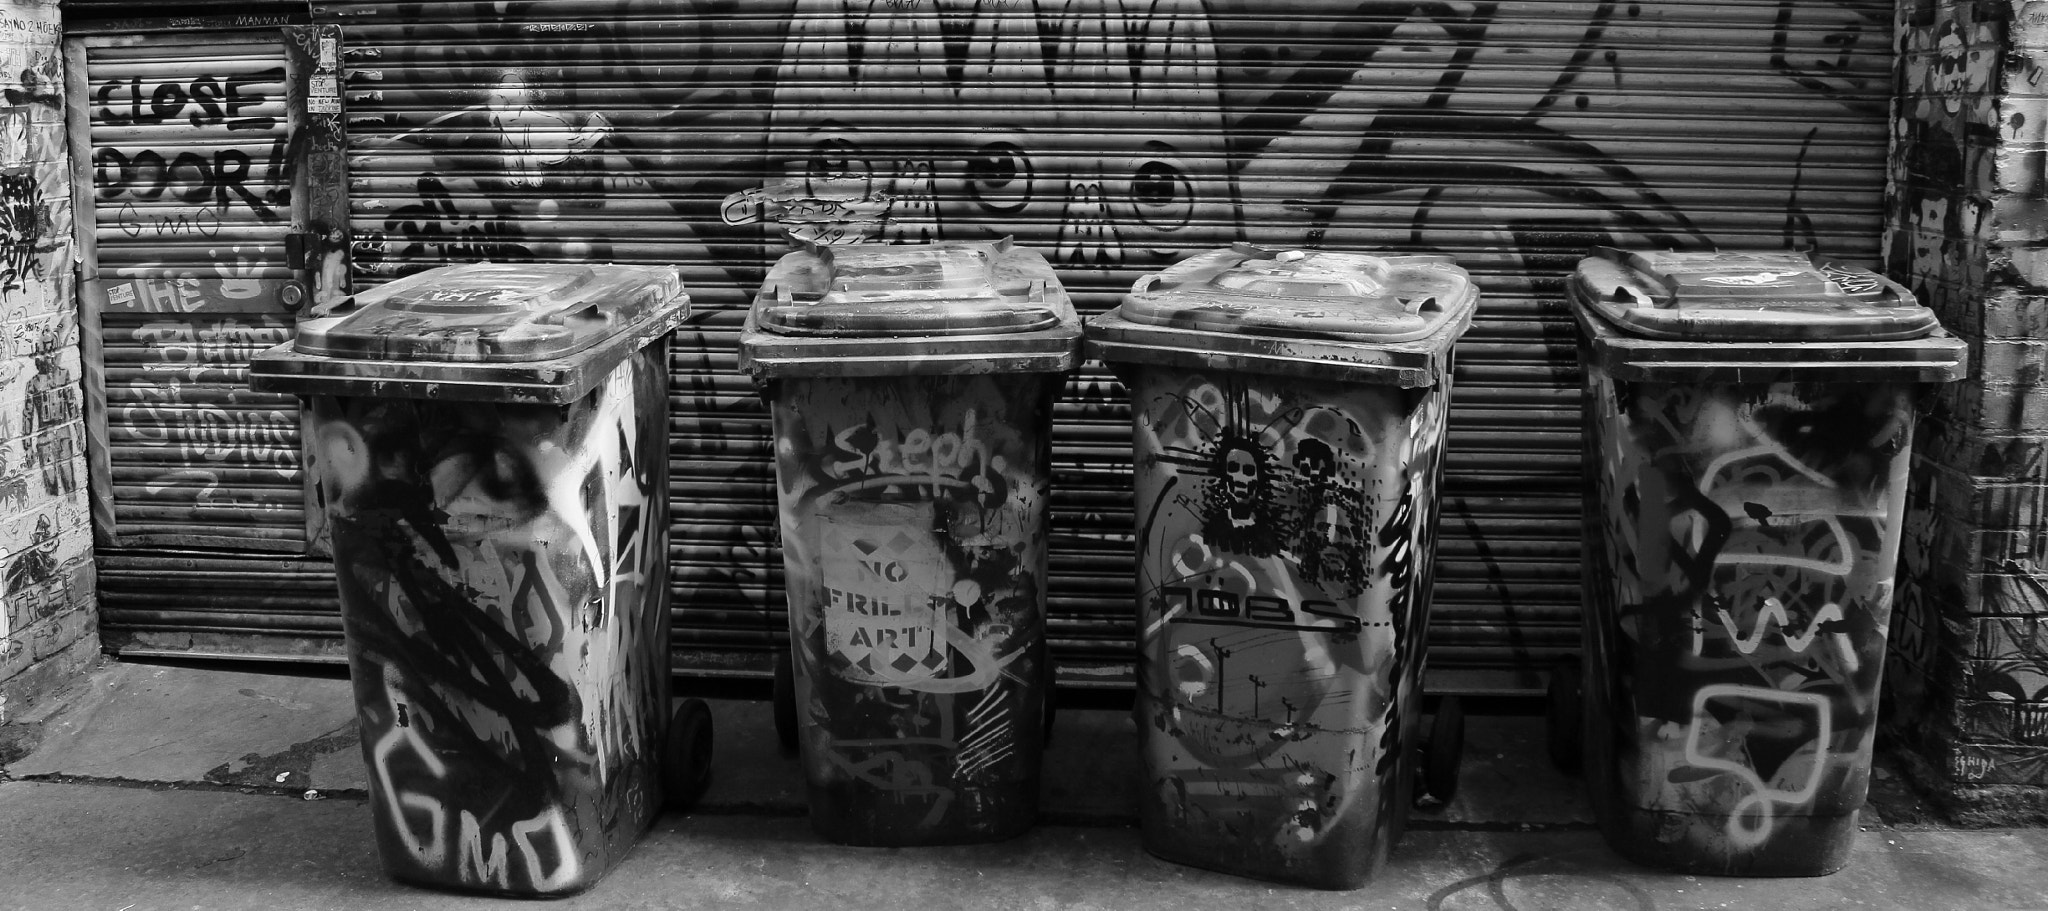 Photograph Graffiti Bins by Meg T on 500px